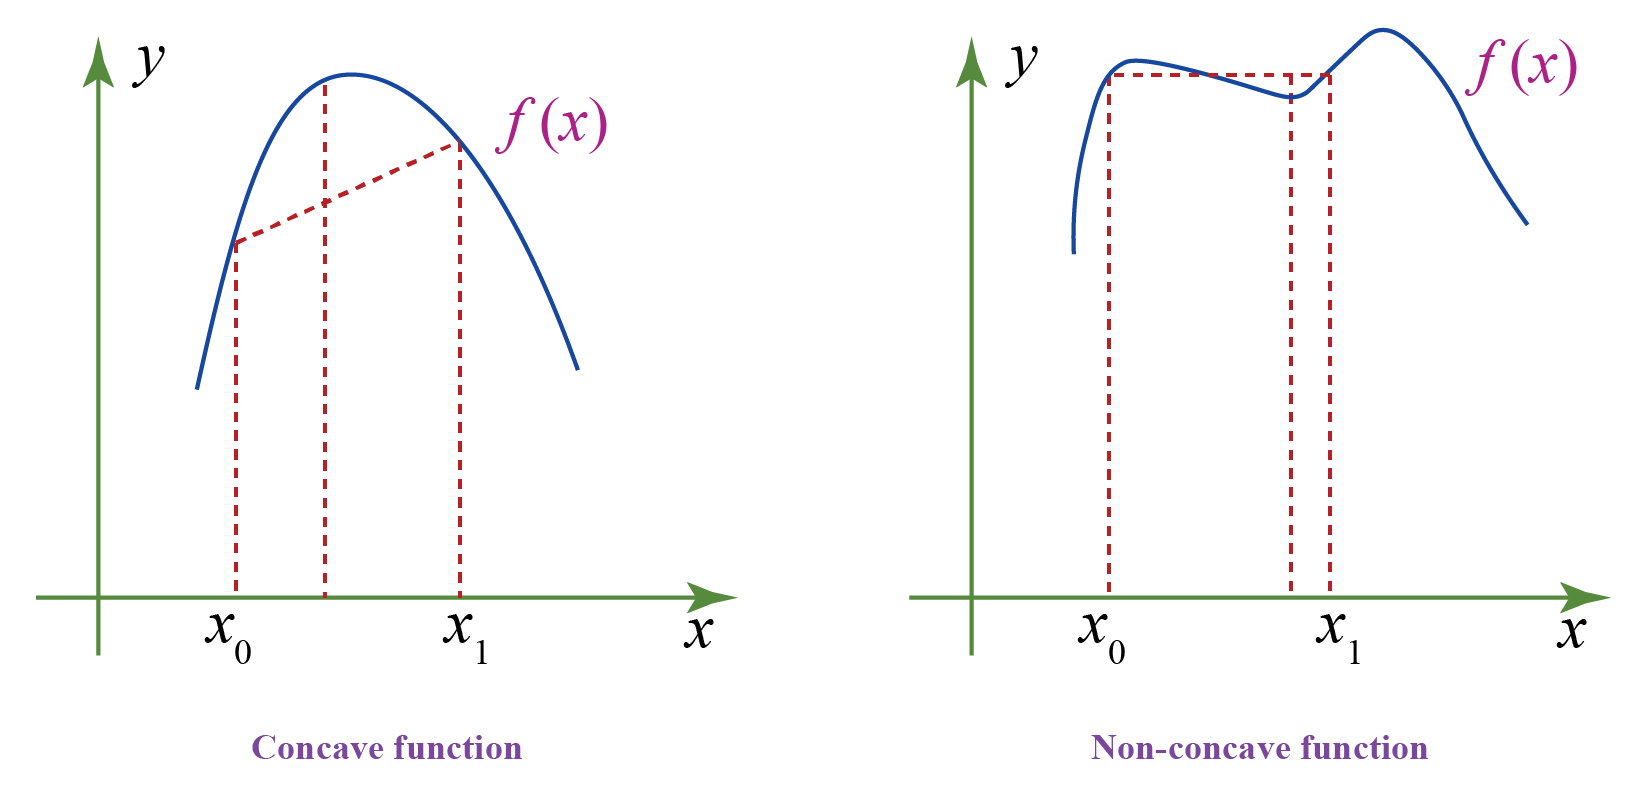 Concave and non-concave functions depicted on graph